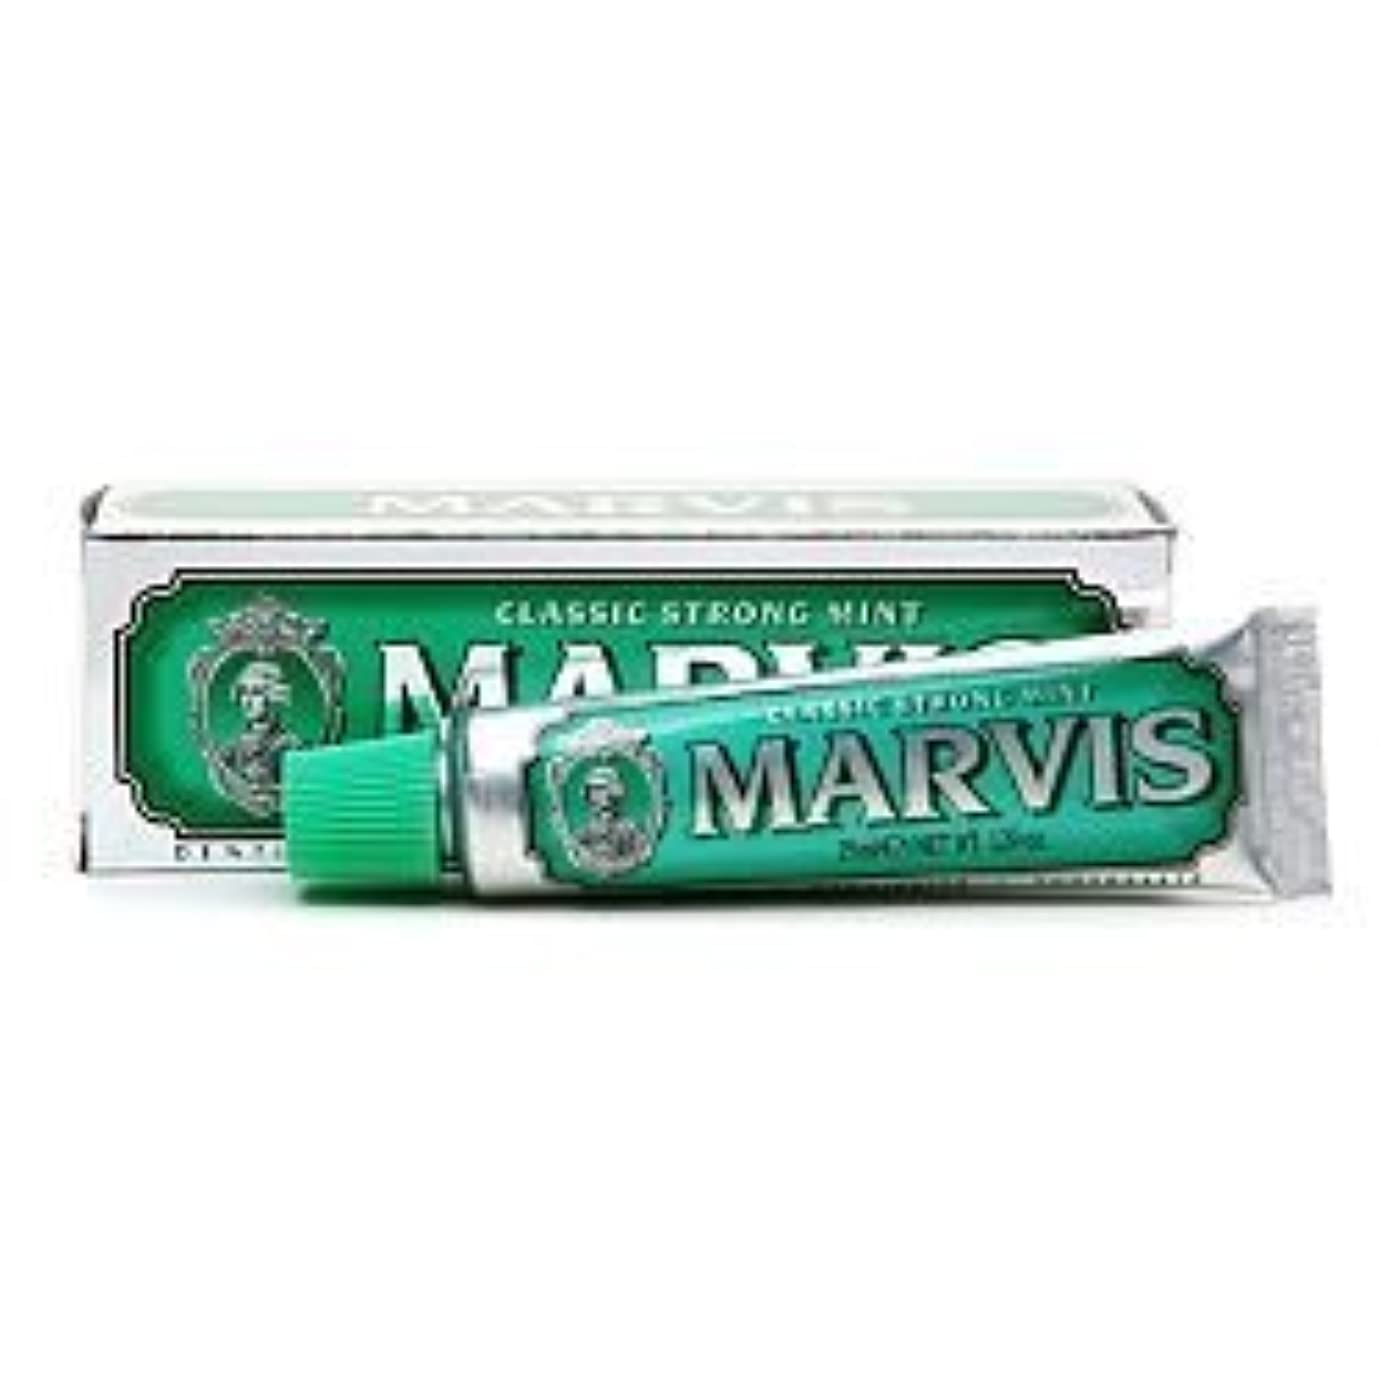 Marvis Travel Sized Toothpaste, Classic Strong Mint 1.29 oz (25 ml) (Qunatity of 4) by Marvis [並行輸入品]